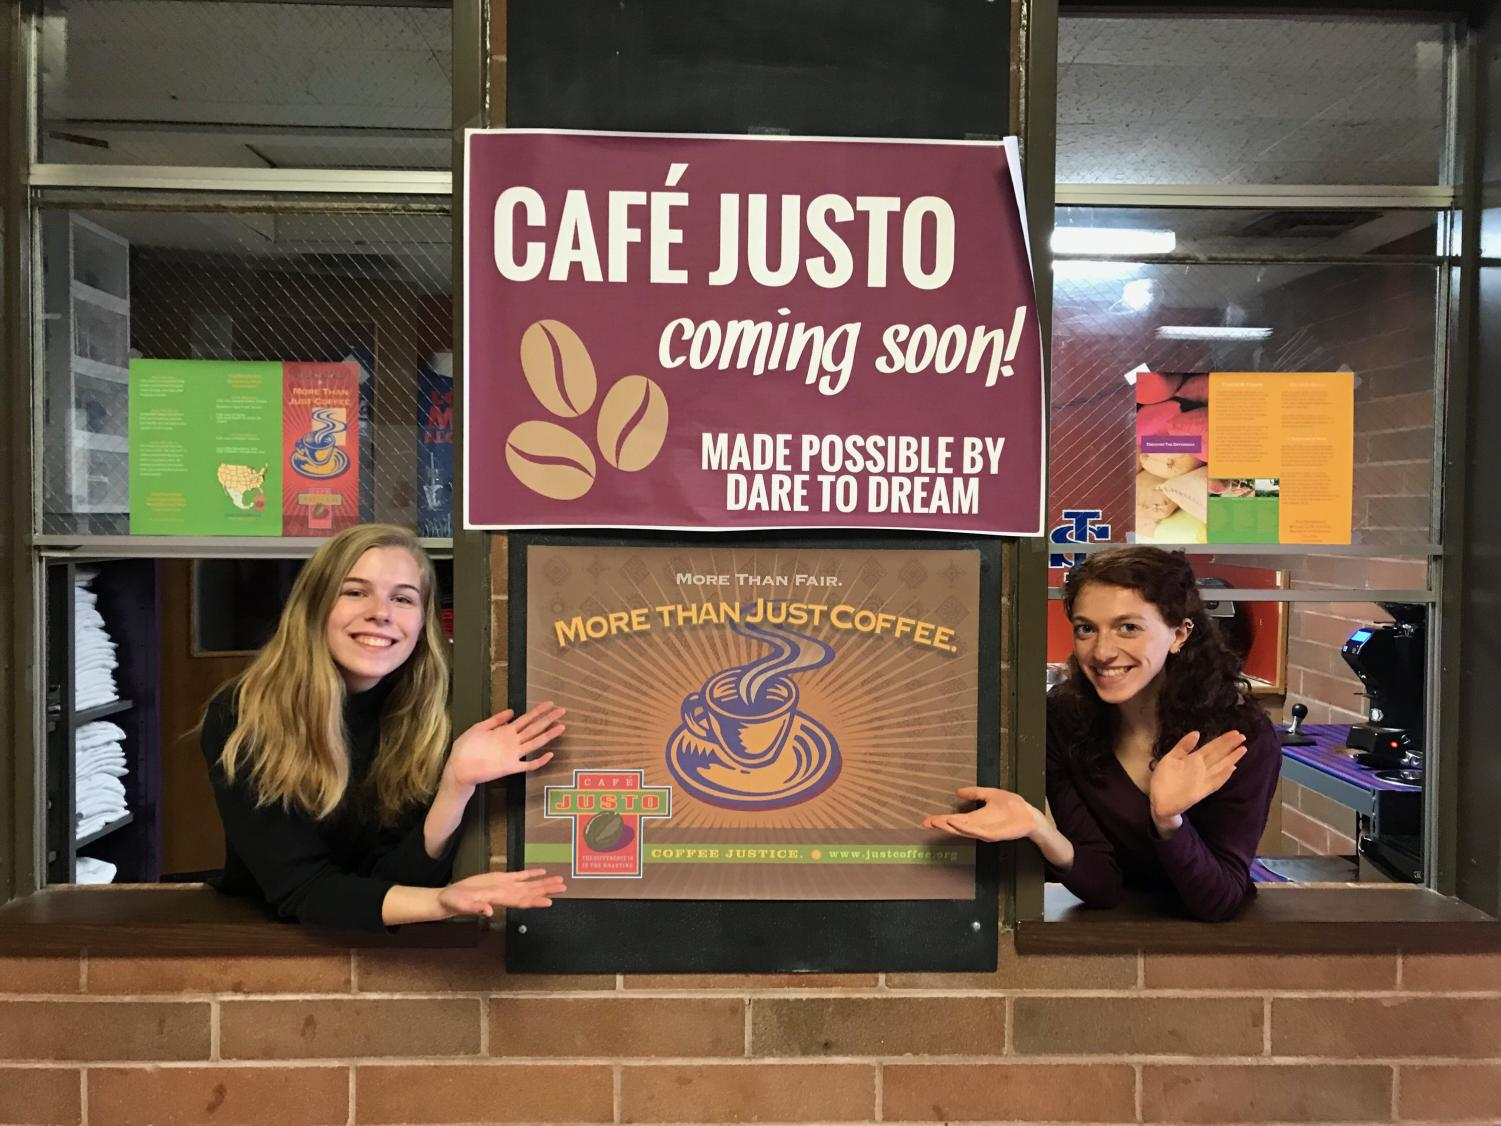 Seniors Lenora Mathis and Brigid Hanley one year ago anticipating the opening of Café Justo.